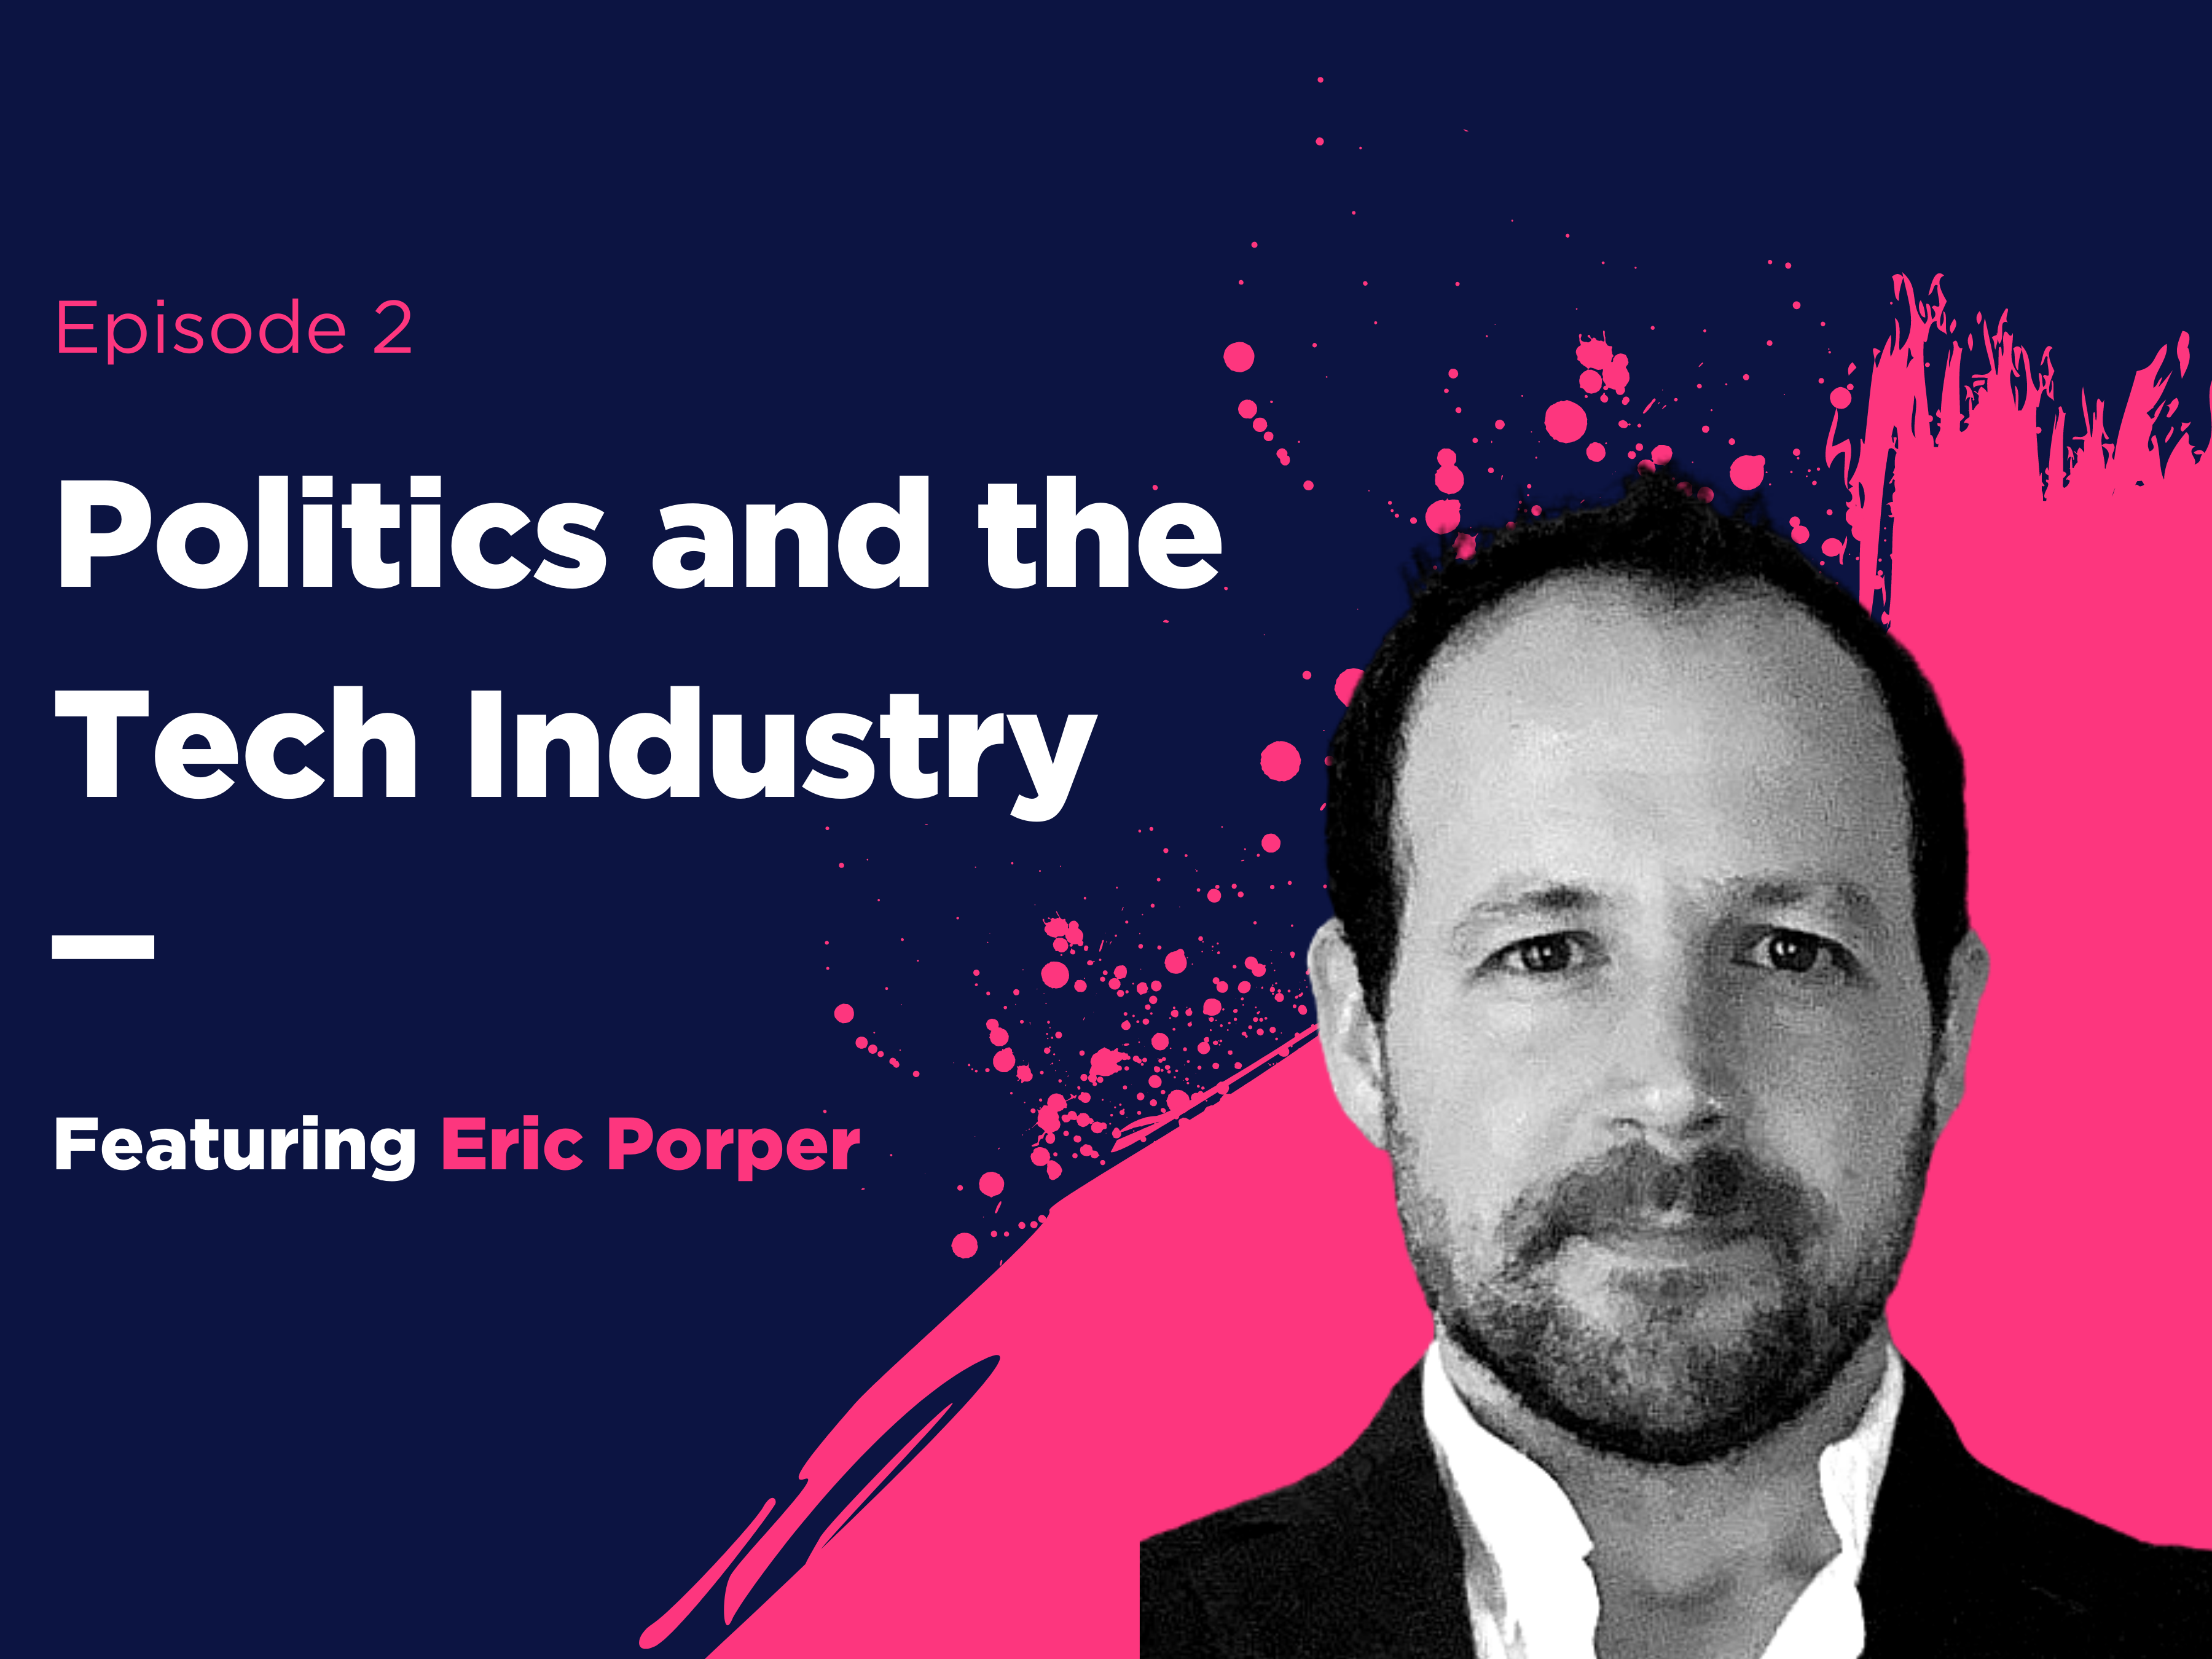 As technology continues to change the way the economy works, how are politicians changing with it? What can we do to ensure that those who aren't technologically inclined can keep up in an age of continued growth in automation and production through blockchain technology? In episode 2, Nick talks with Eric Porper, Co-Chair of the North Carolina Blockchain Initiative, about his work in helping politicians encourage technology as an industry, and helping them adjust to the fact that companies are expected to incorporate tech into their business plan, whether or not they identify as a tech company. Additionally, they talk about whether or not a college degree is absolutely necessary in a world of thriving entrepreneurship and change, and how we can help people evolve from fields that don't currently utilize technology.